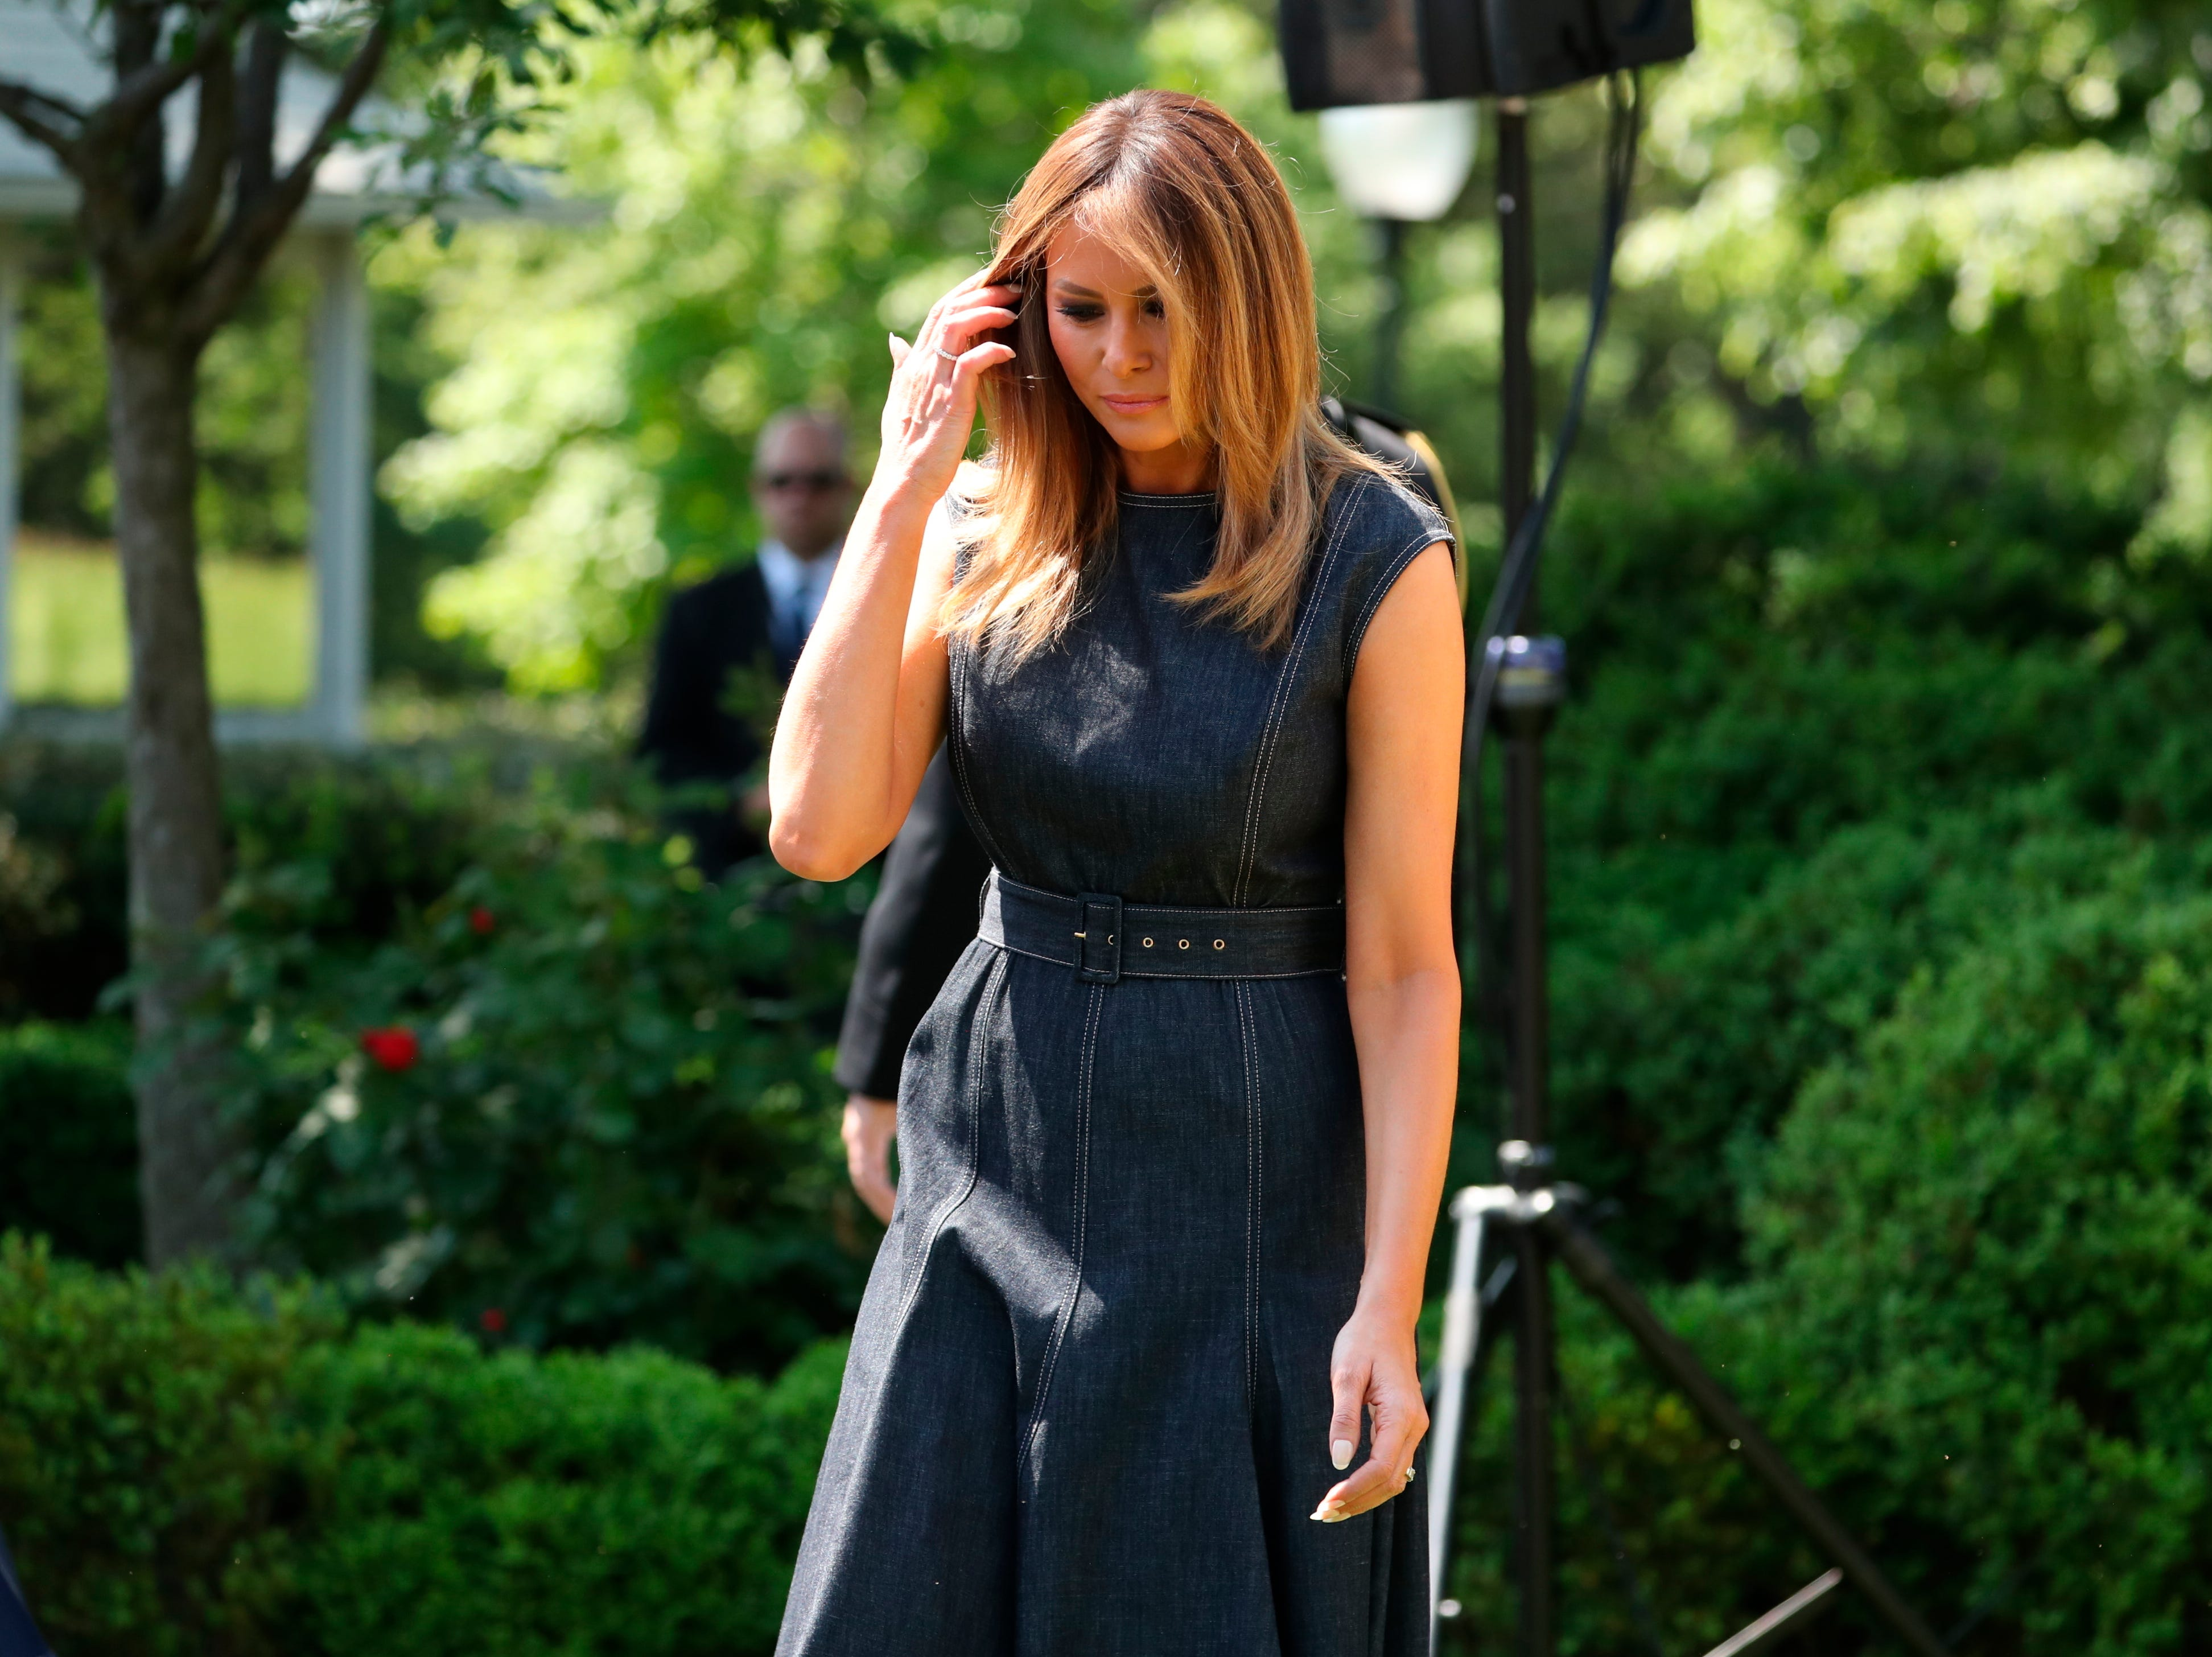 First lady Melania Trump walks out to begin a program for the first lady's Be Best initiative in the Rose Garden of the White House, Tuesday, May 7, 2019, in Washington.